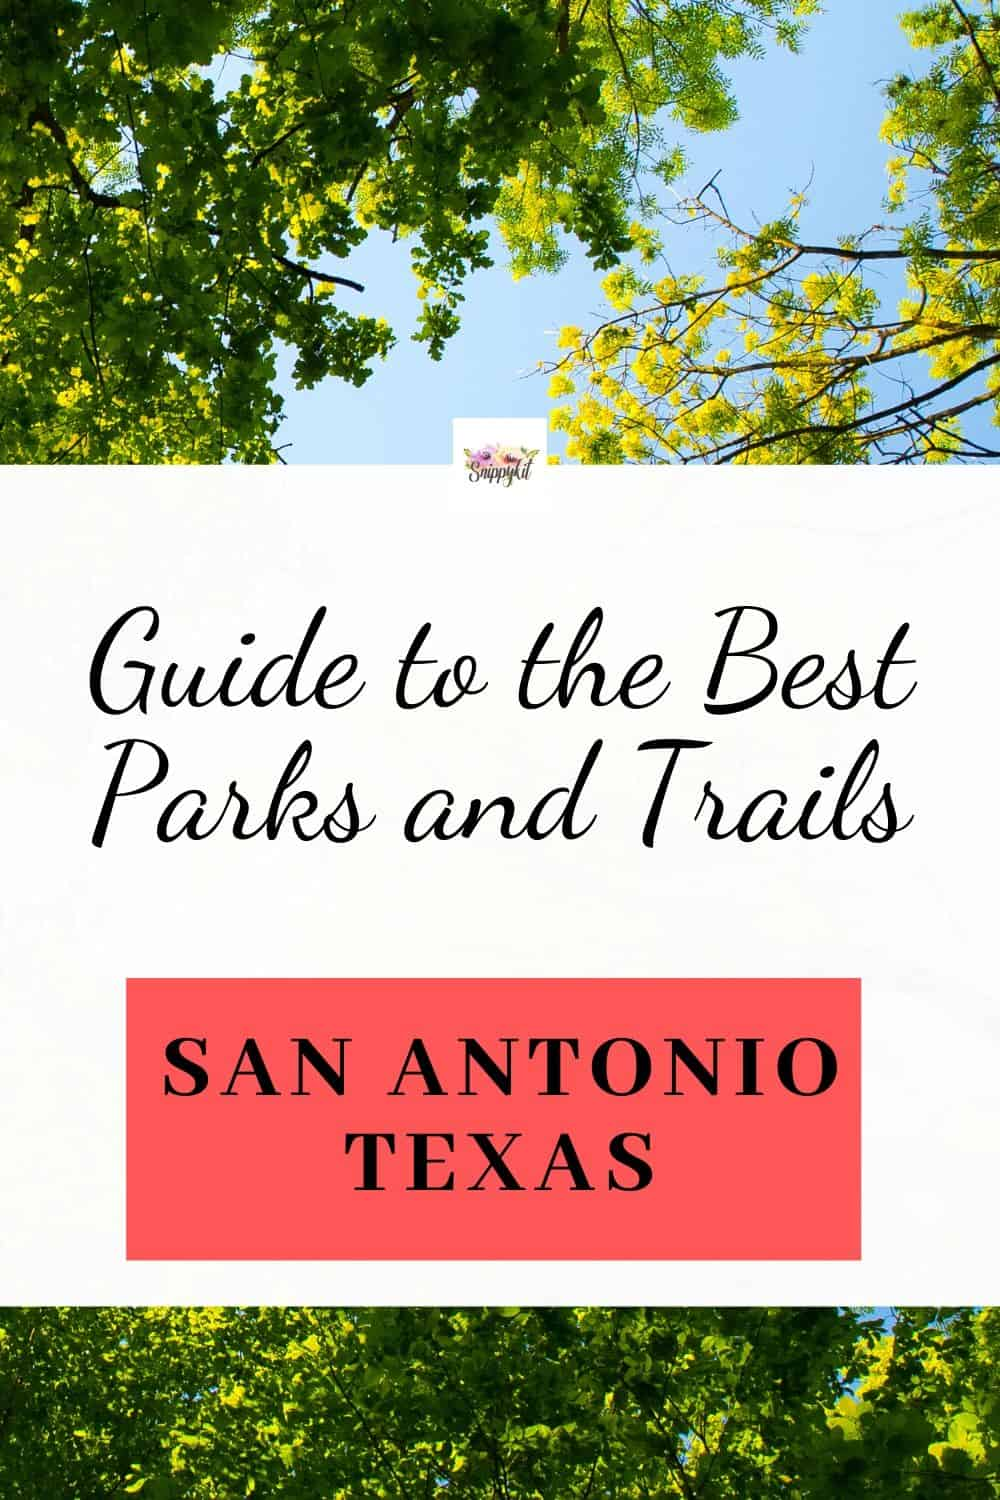 Did you know you could go hiking in South Texas? Take a look at some of the parks you can go to with your kids and hike for the day.